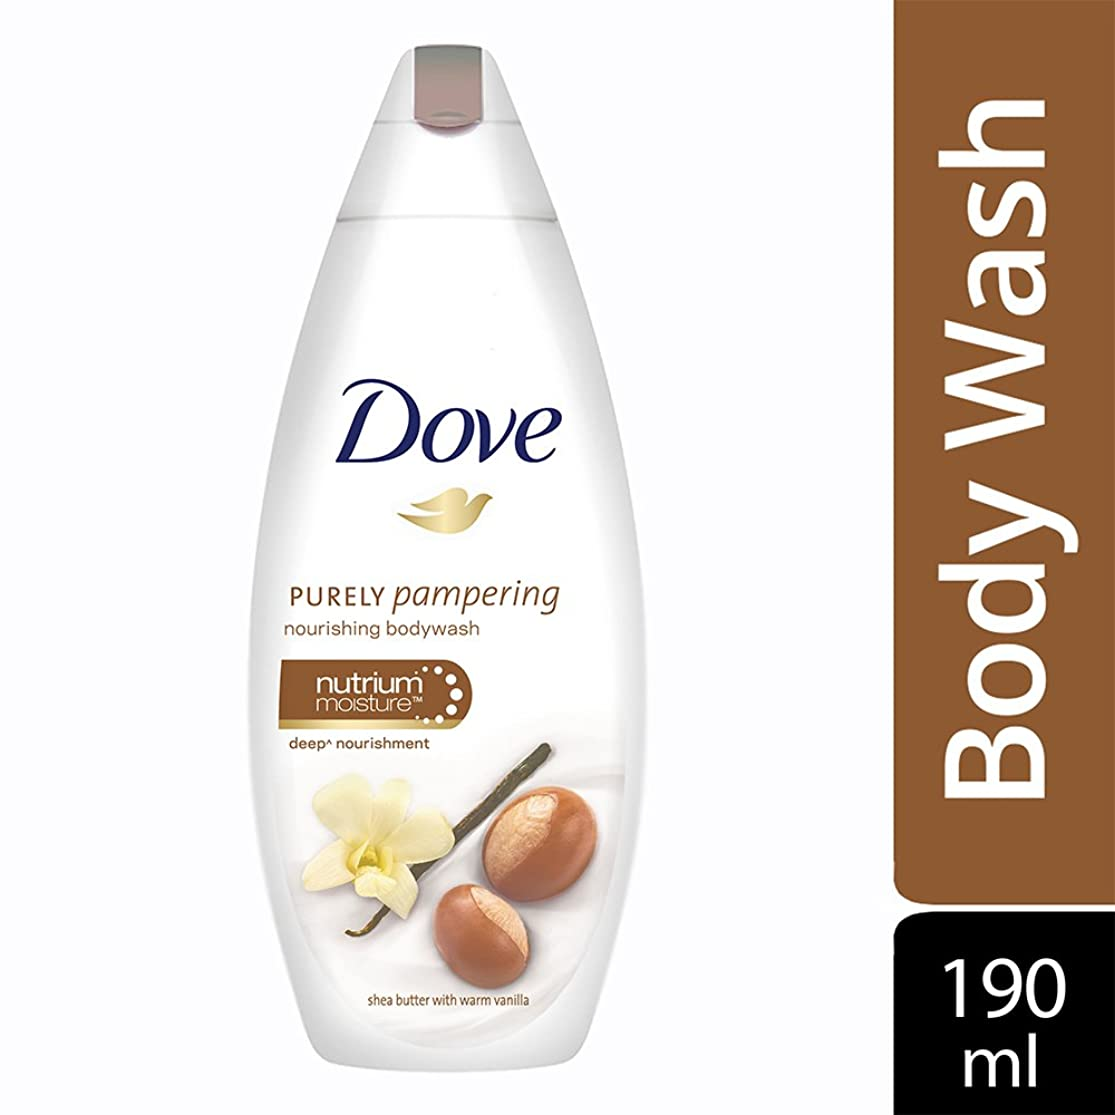 聖なる恋人用心するDove purely pampering Shea Butter and Warm Vanilla Body Wash, 190ml